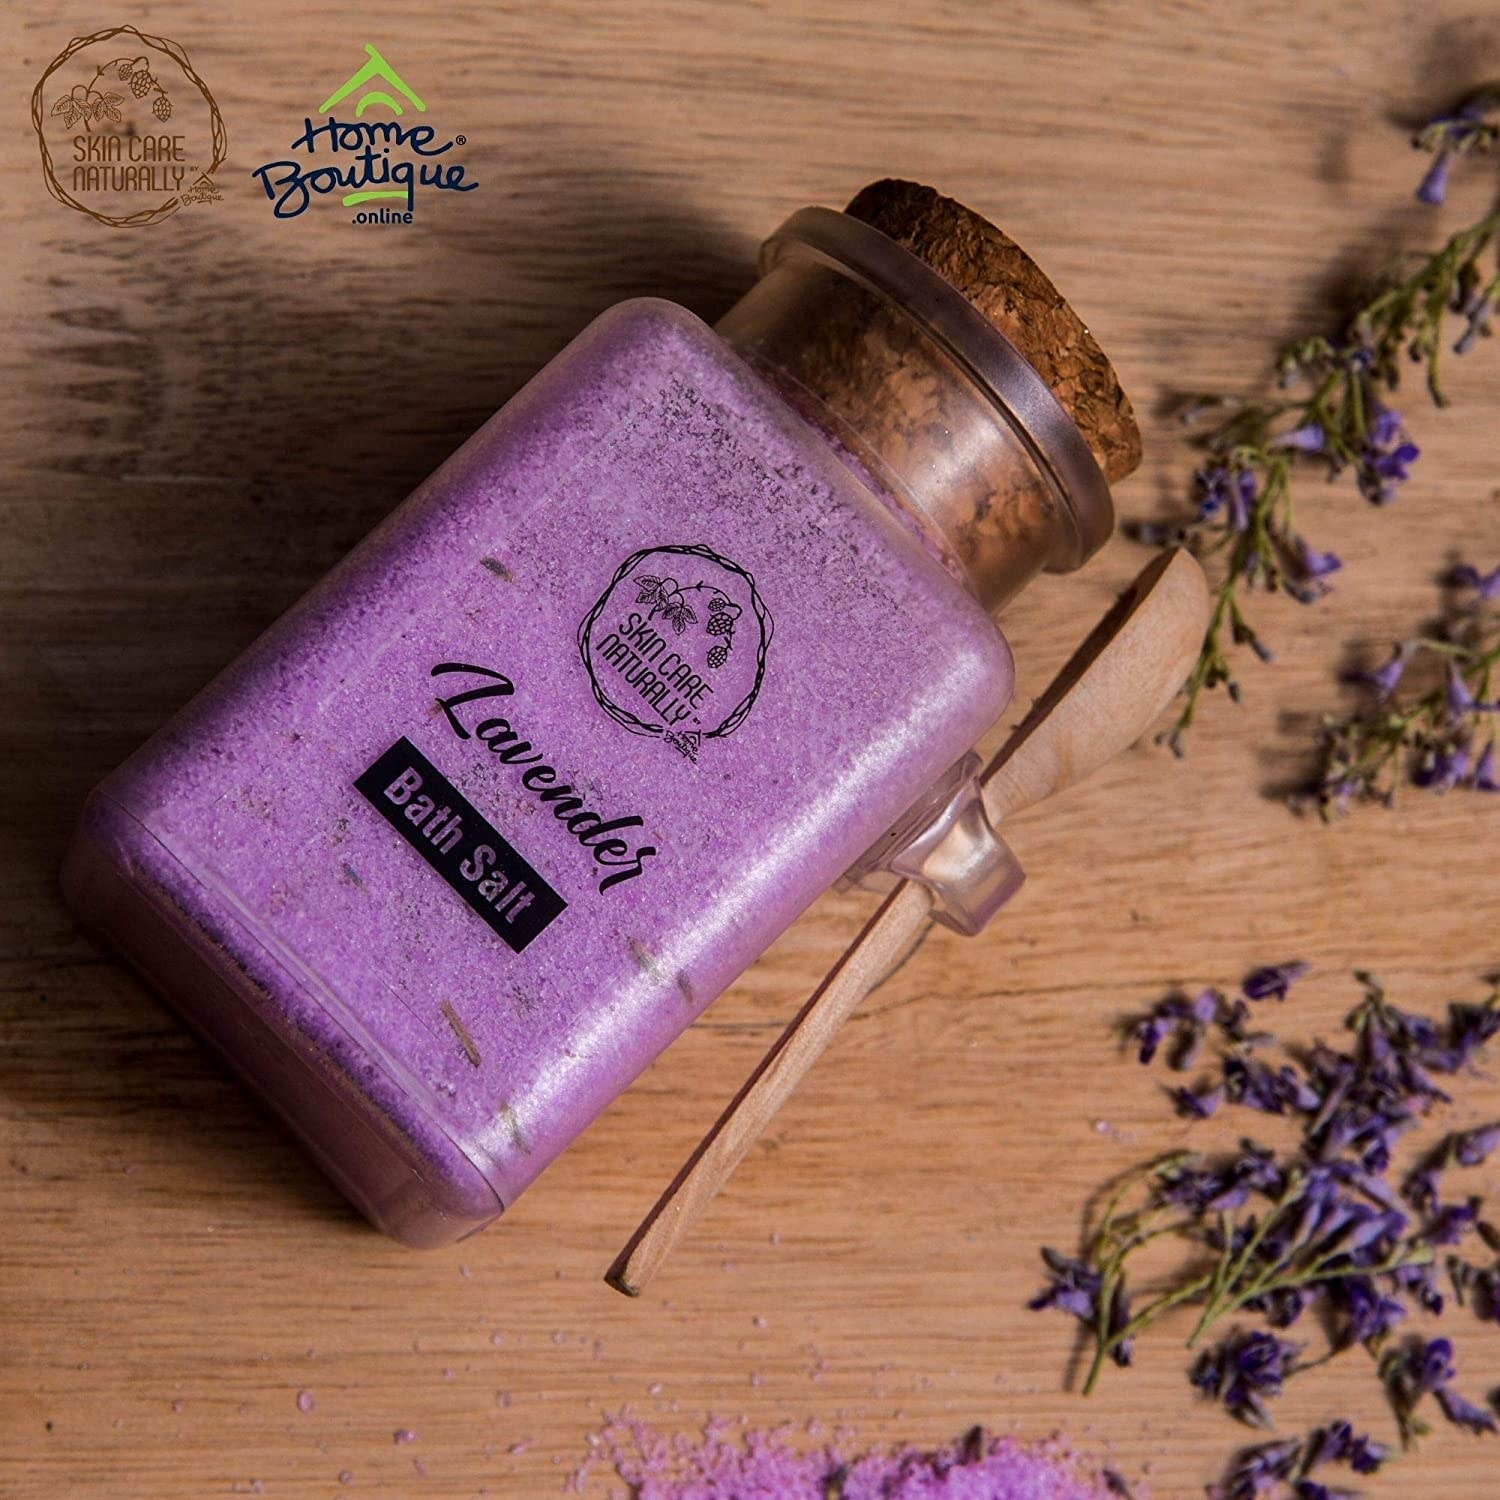 Lavender bath salts in a glass bottle with a cork